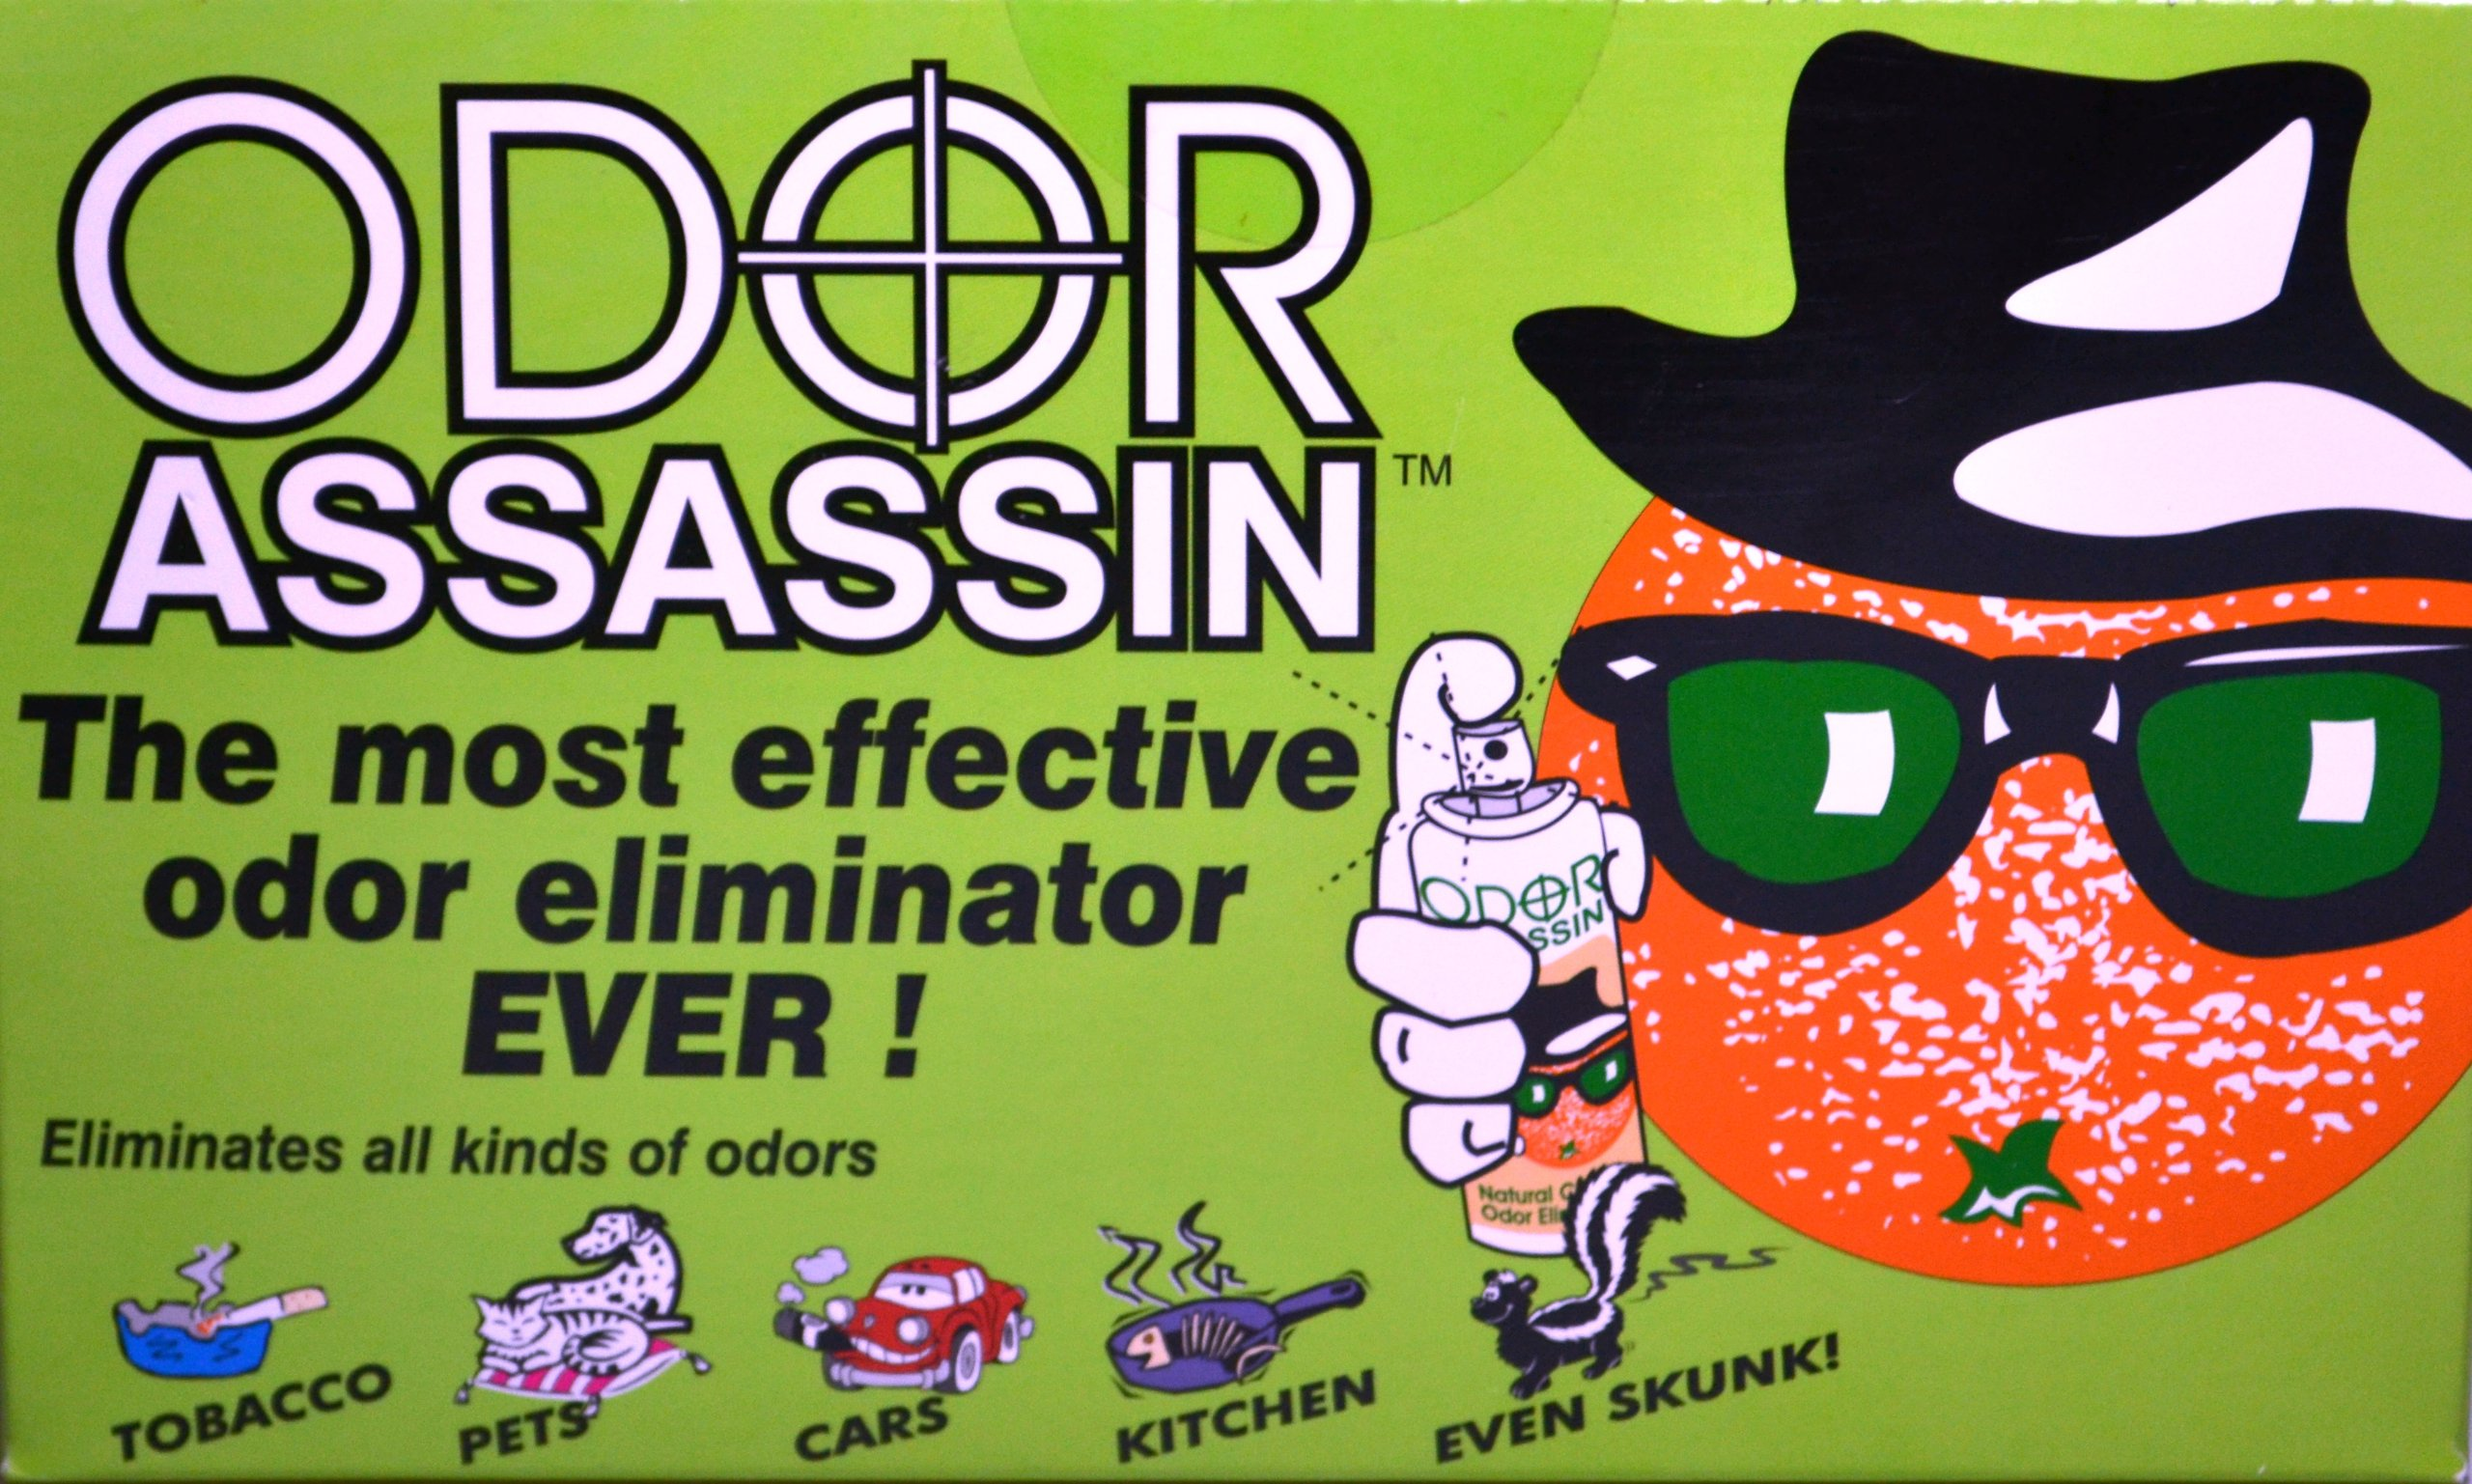 Odor Assassin Odor Control Spray, LEMON & LIME scent, Pack of 3 by JAY MFG (Image #2)